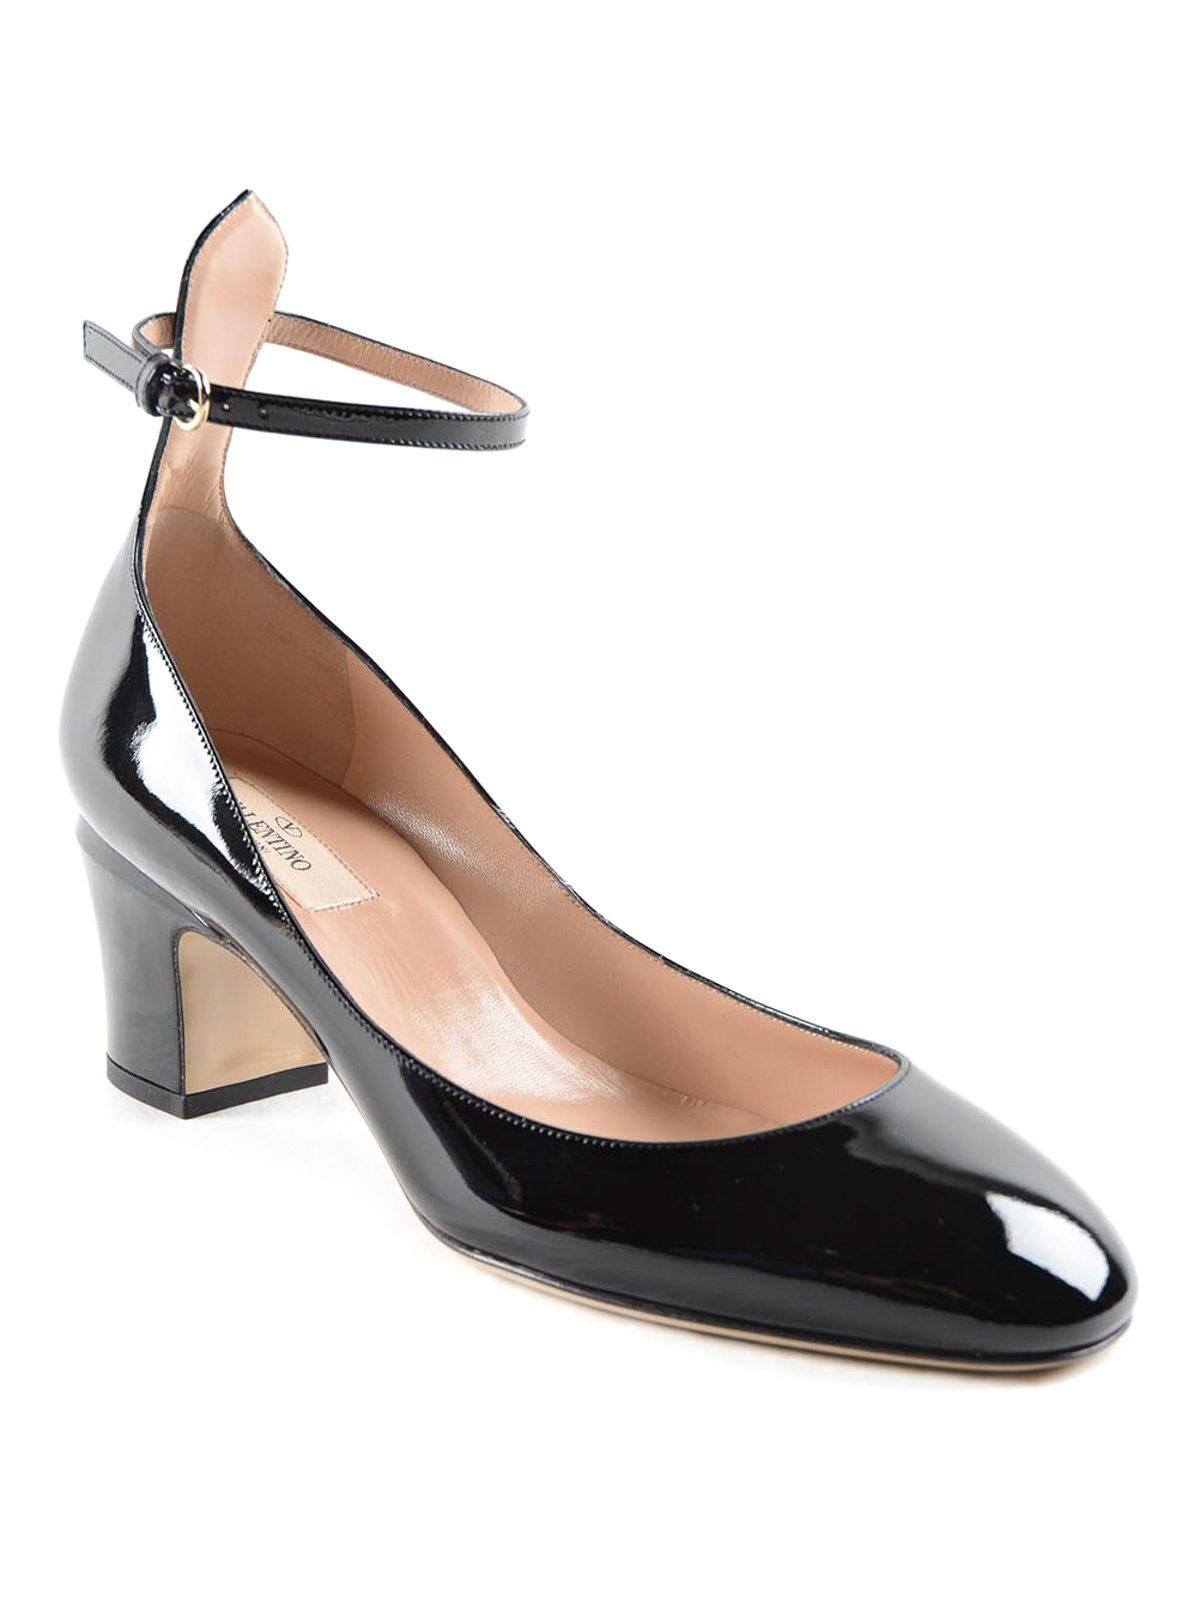 Black Leather Court Shoes With Ankle Strap